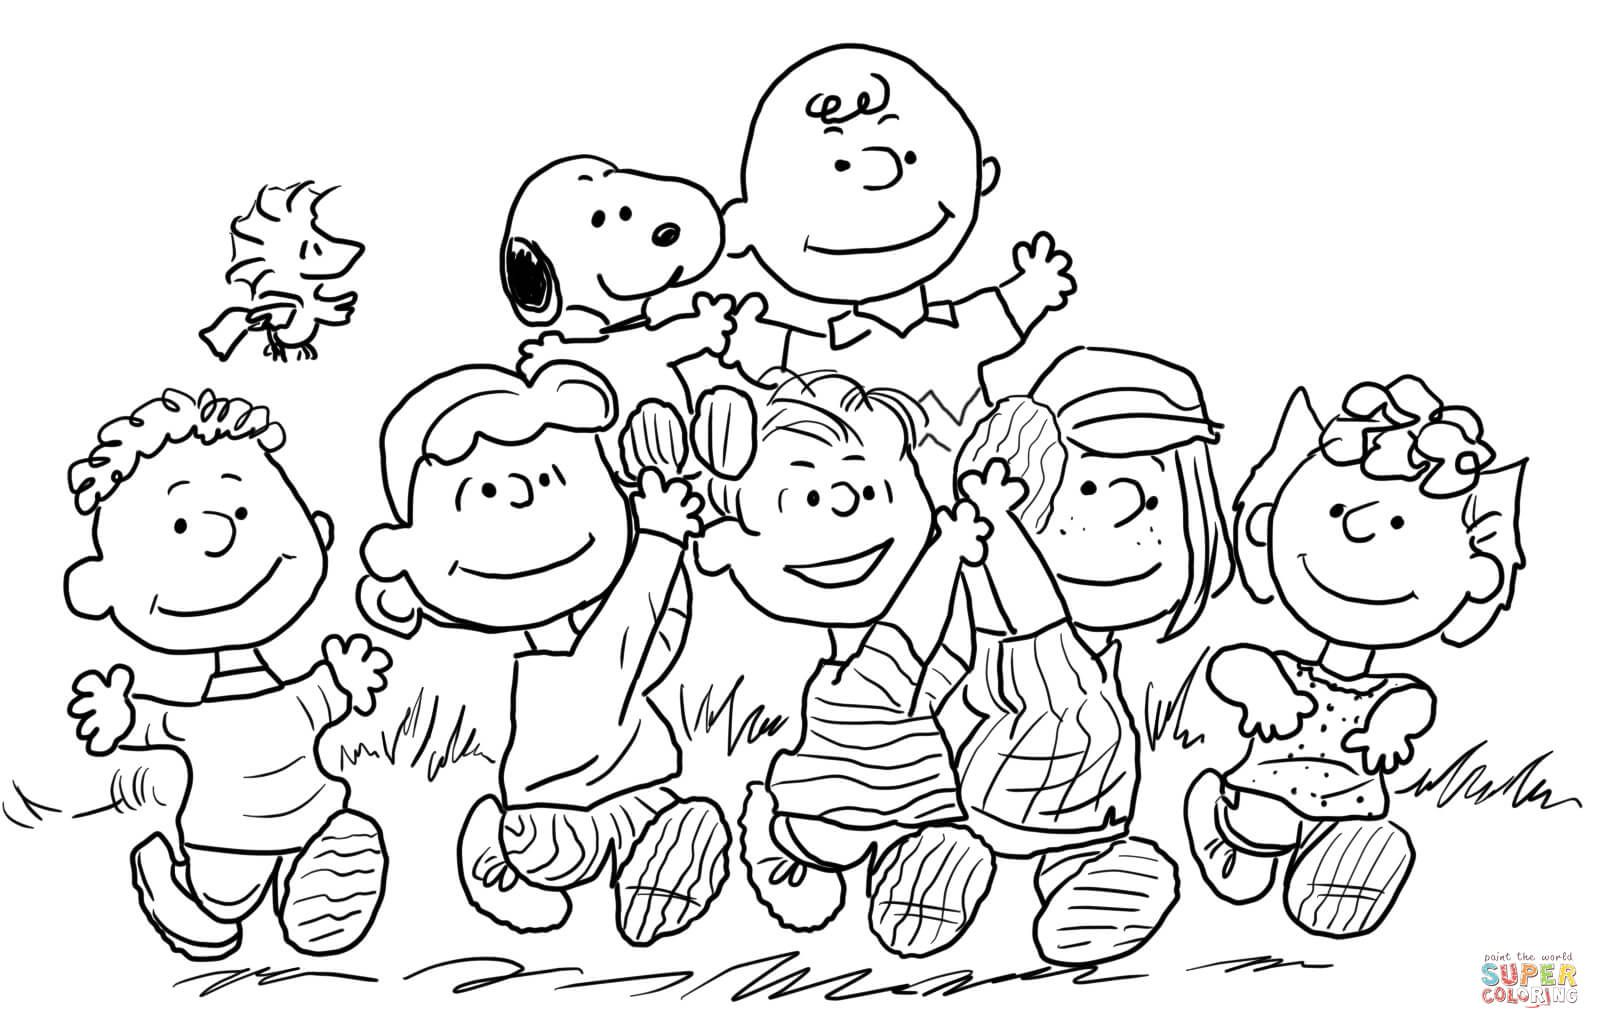 snoopy  the peanuts gang coloring page from peanuts